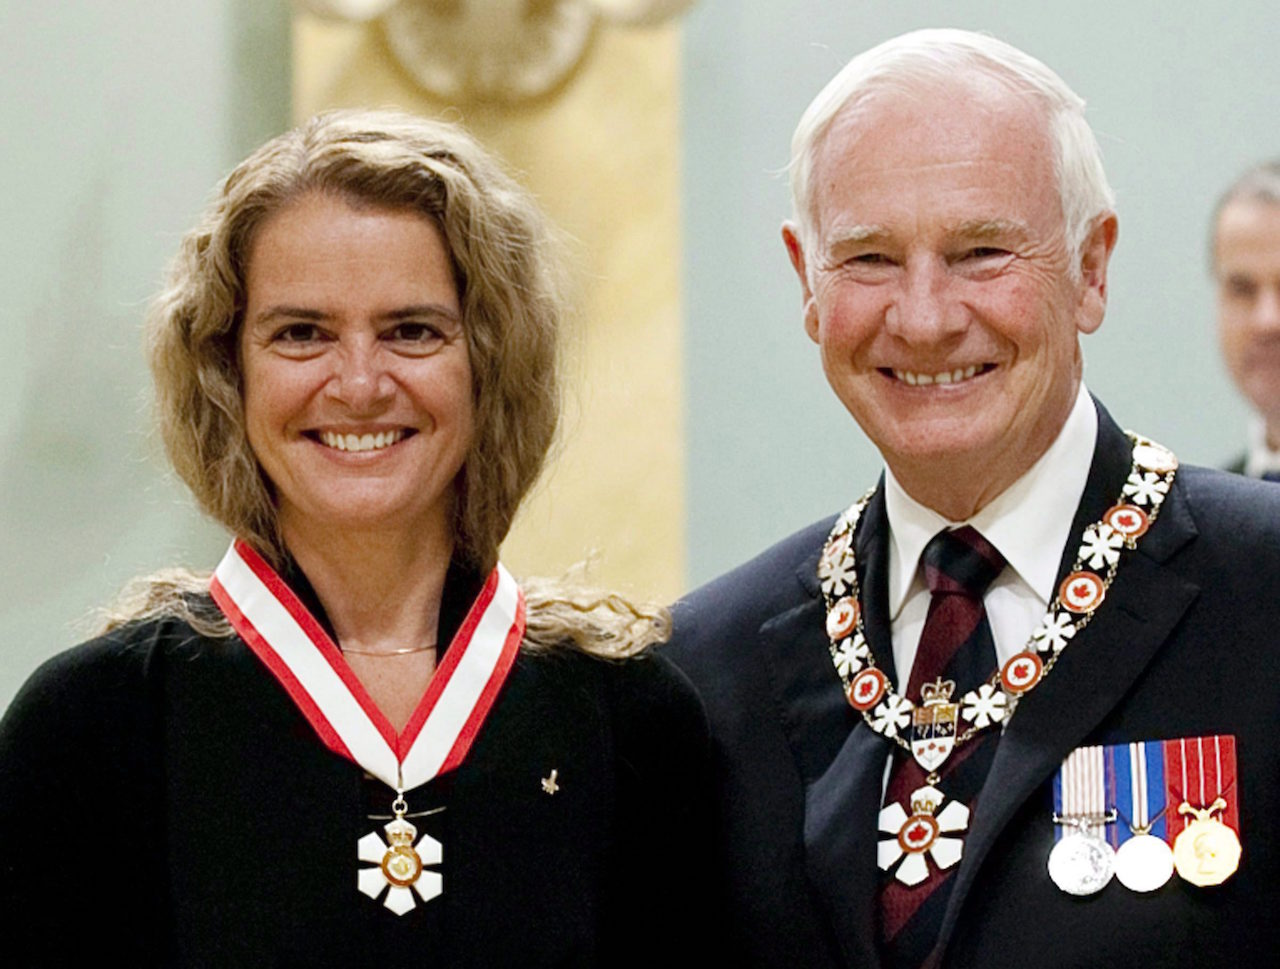 Canadian astronaut Julie Payette of Montreal stands with Governor General David Johnston after she was invested into the Order of Canada as Officer during a ceremony at Rideau Hall in Ottawa, Friday September 16 2011 . The federal government is set to reveal Canada's next governor general Thursday with an announcement outside the doors of the Senate. Sources are telling The Canadian Press and others that astronaut Julie Payette is among the top contenders. THE CANADIAN PRESS/Fred Chartrand